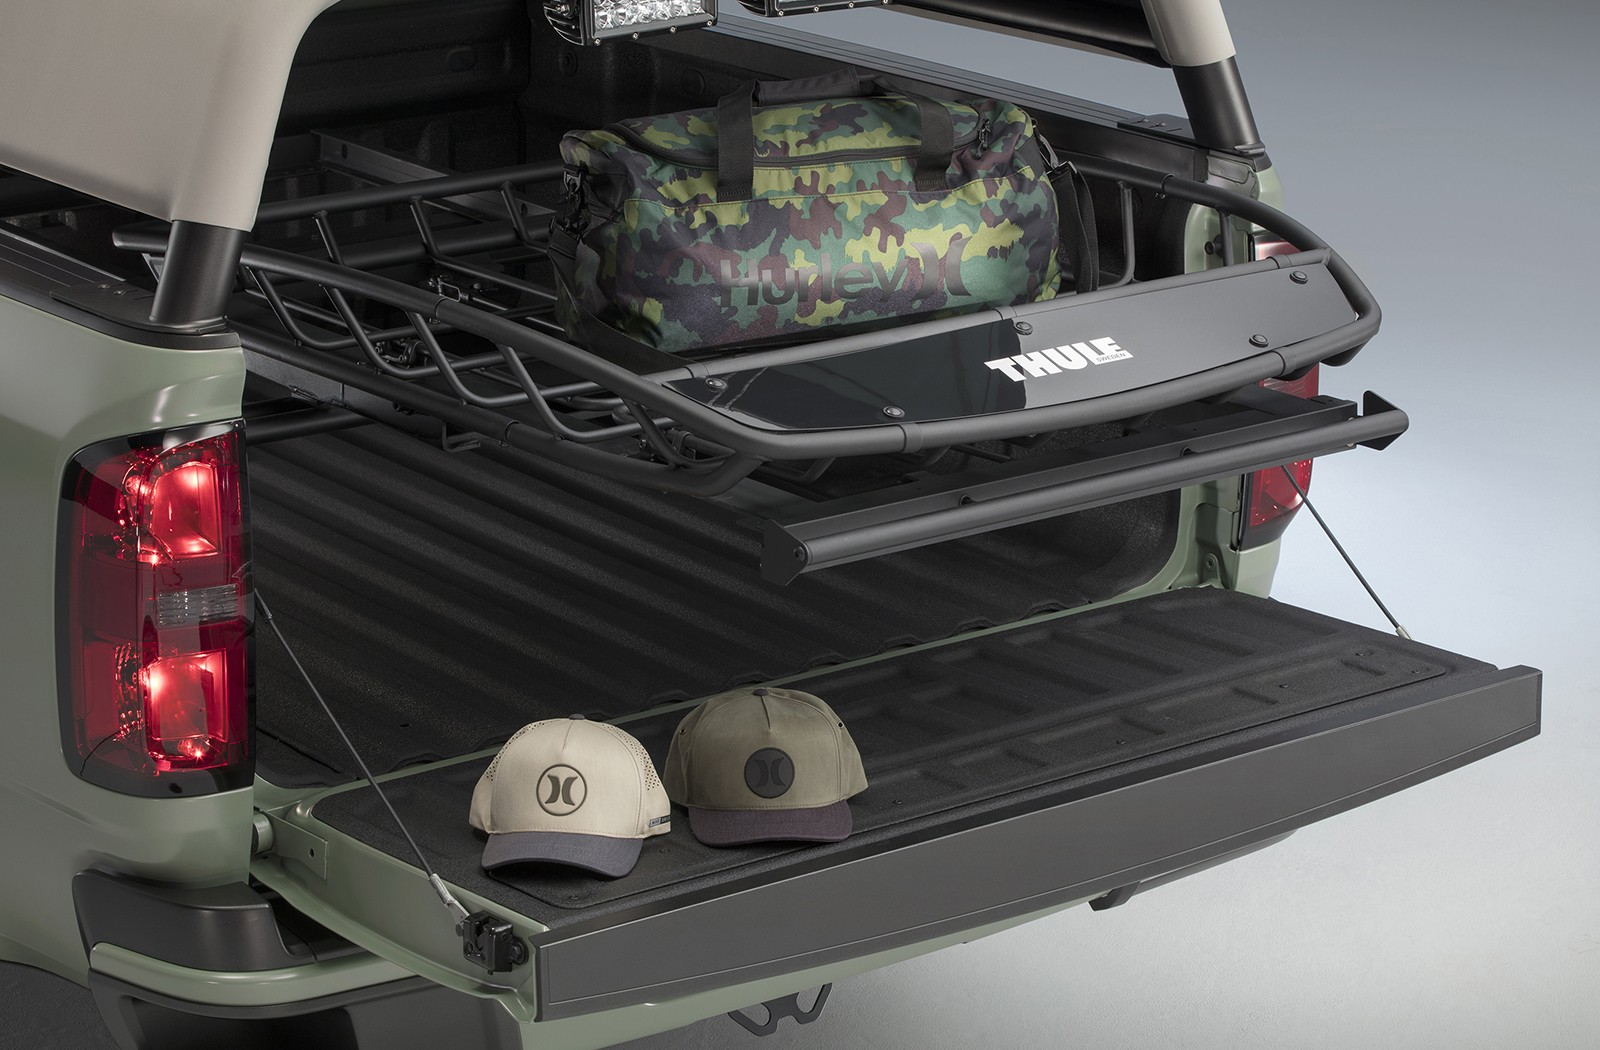 Chevrolet and Hurley, the surfing performance and innovation bra